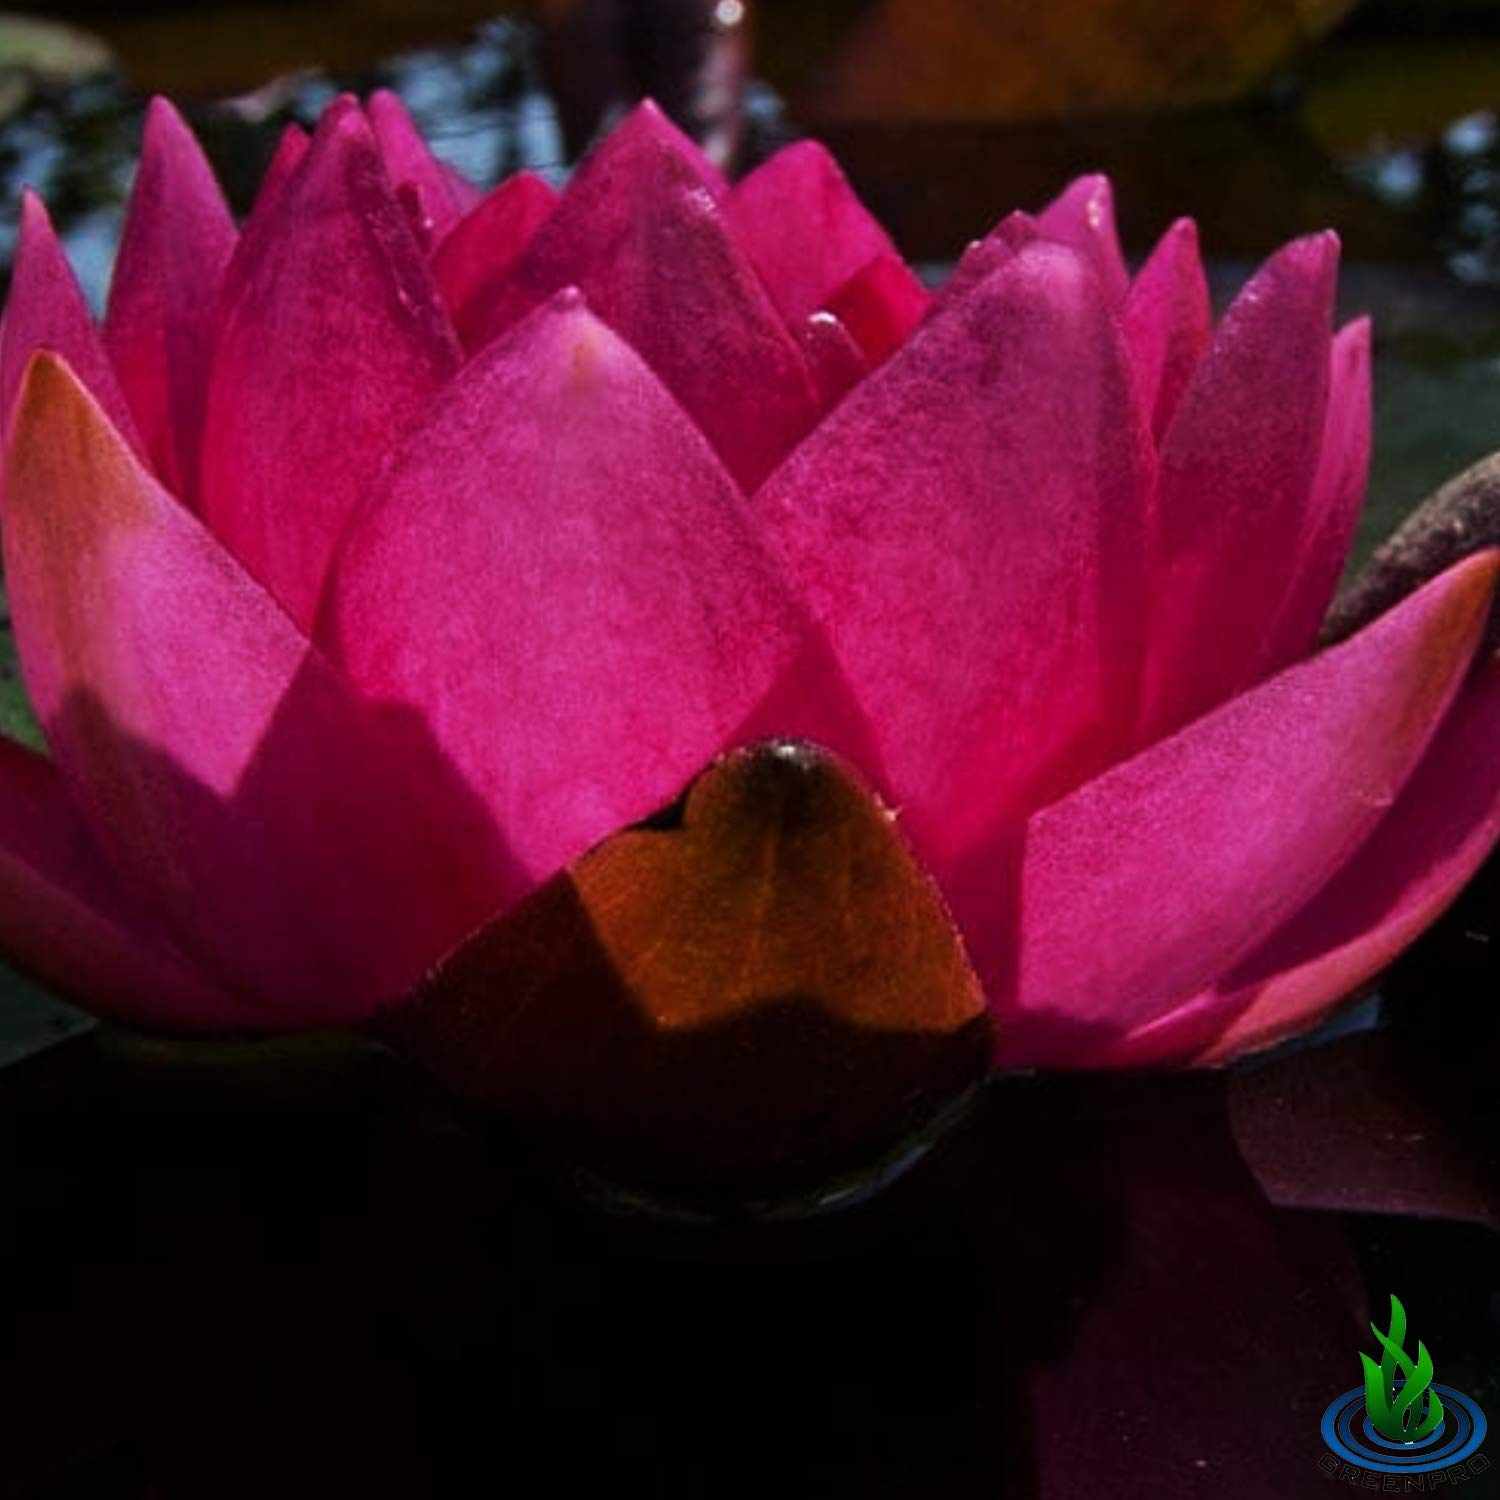 Live Water Lily Tuber Nymphaea James Brydon Pink Hardy Aquatic Plants for Aquarium Freshwater Fish Pond Garden by Greenpro (Image #3)